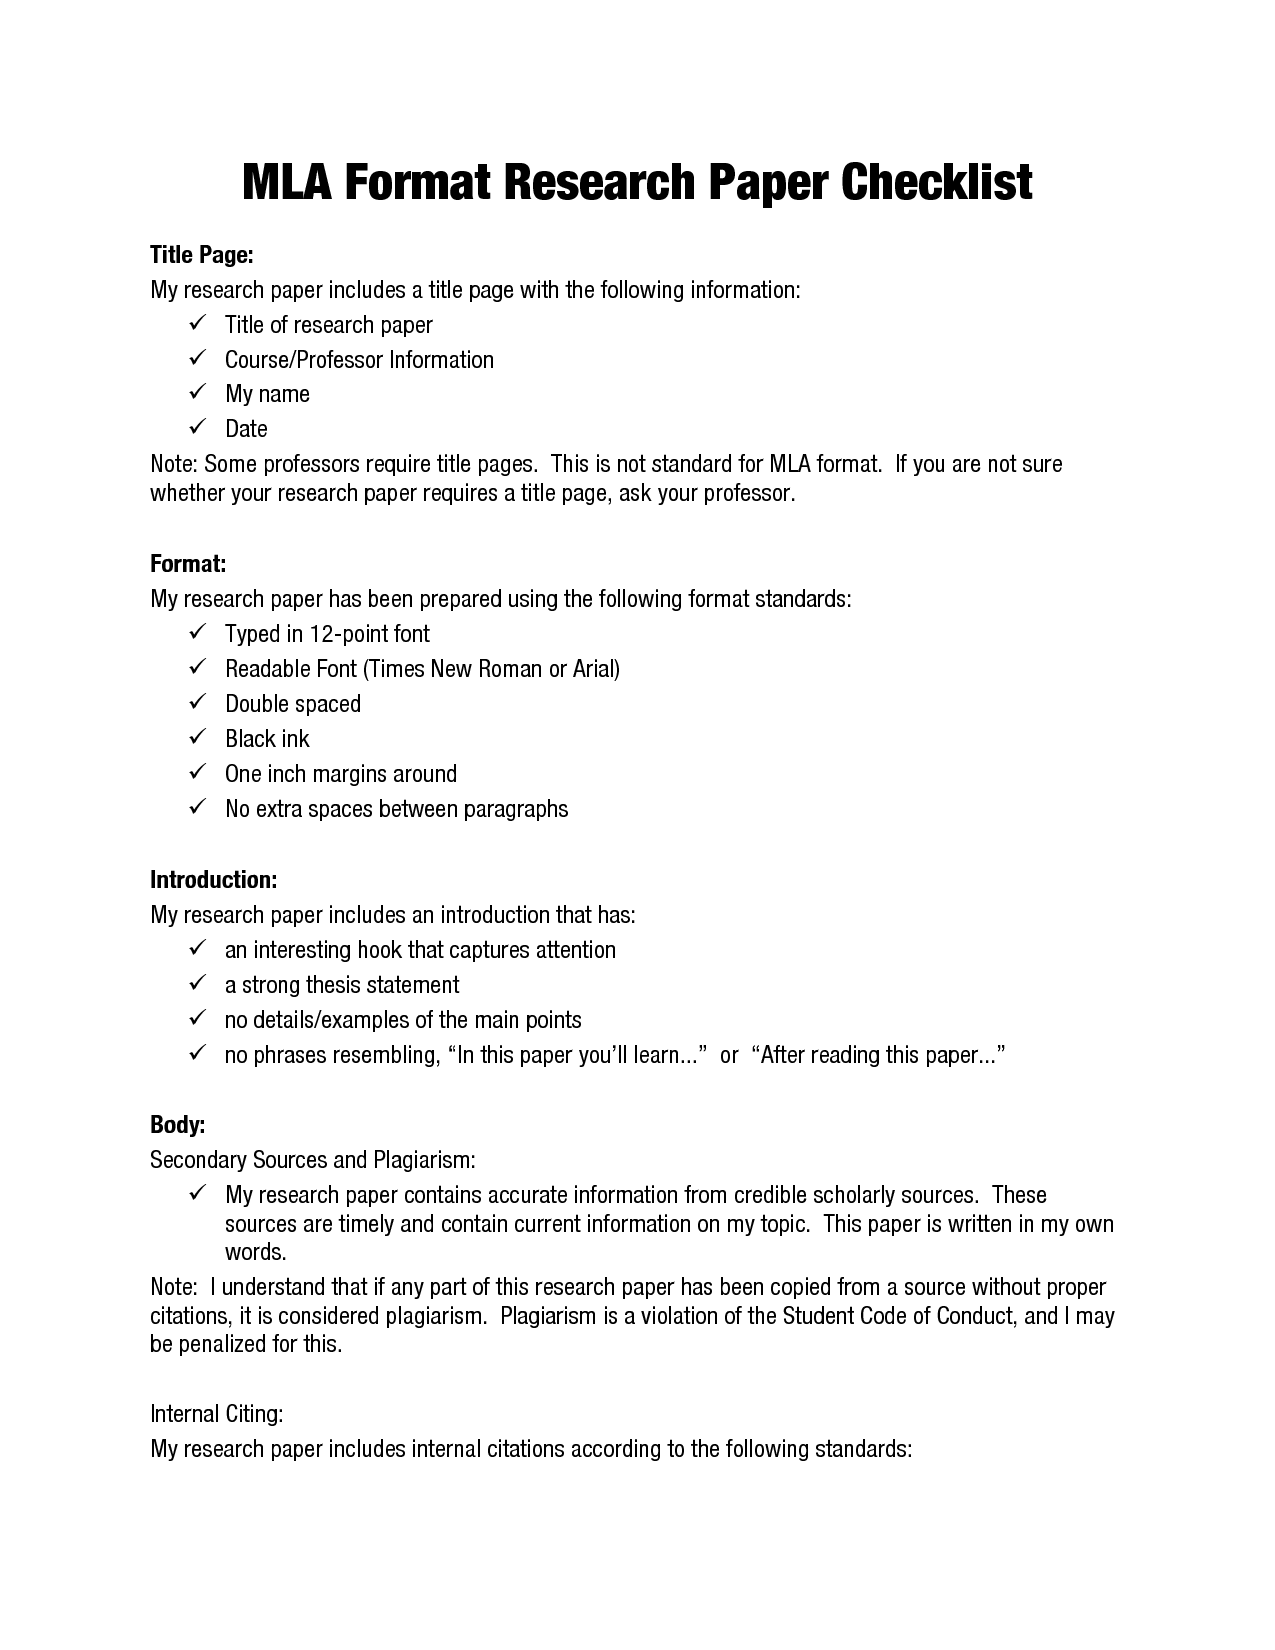 MLA Format Research Papers | MLA Format Research Paper Checklist